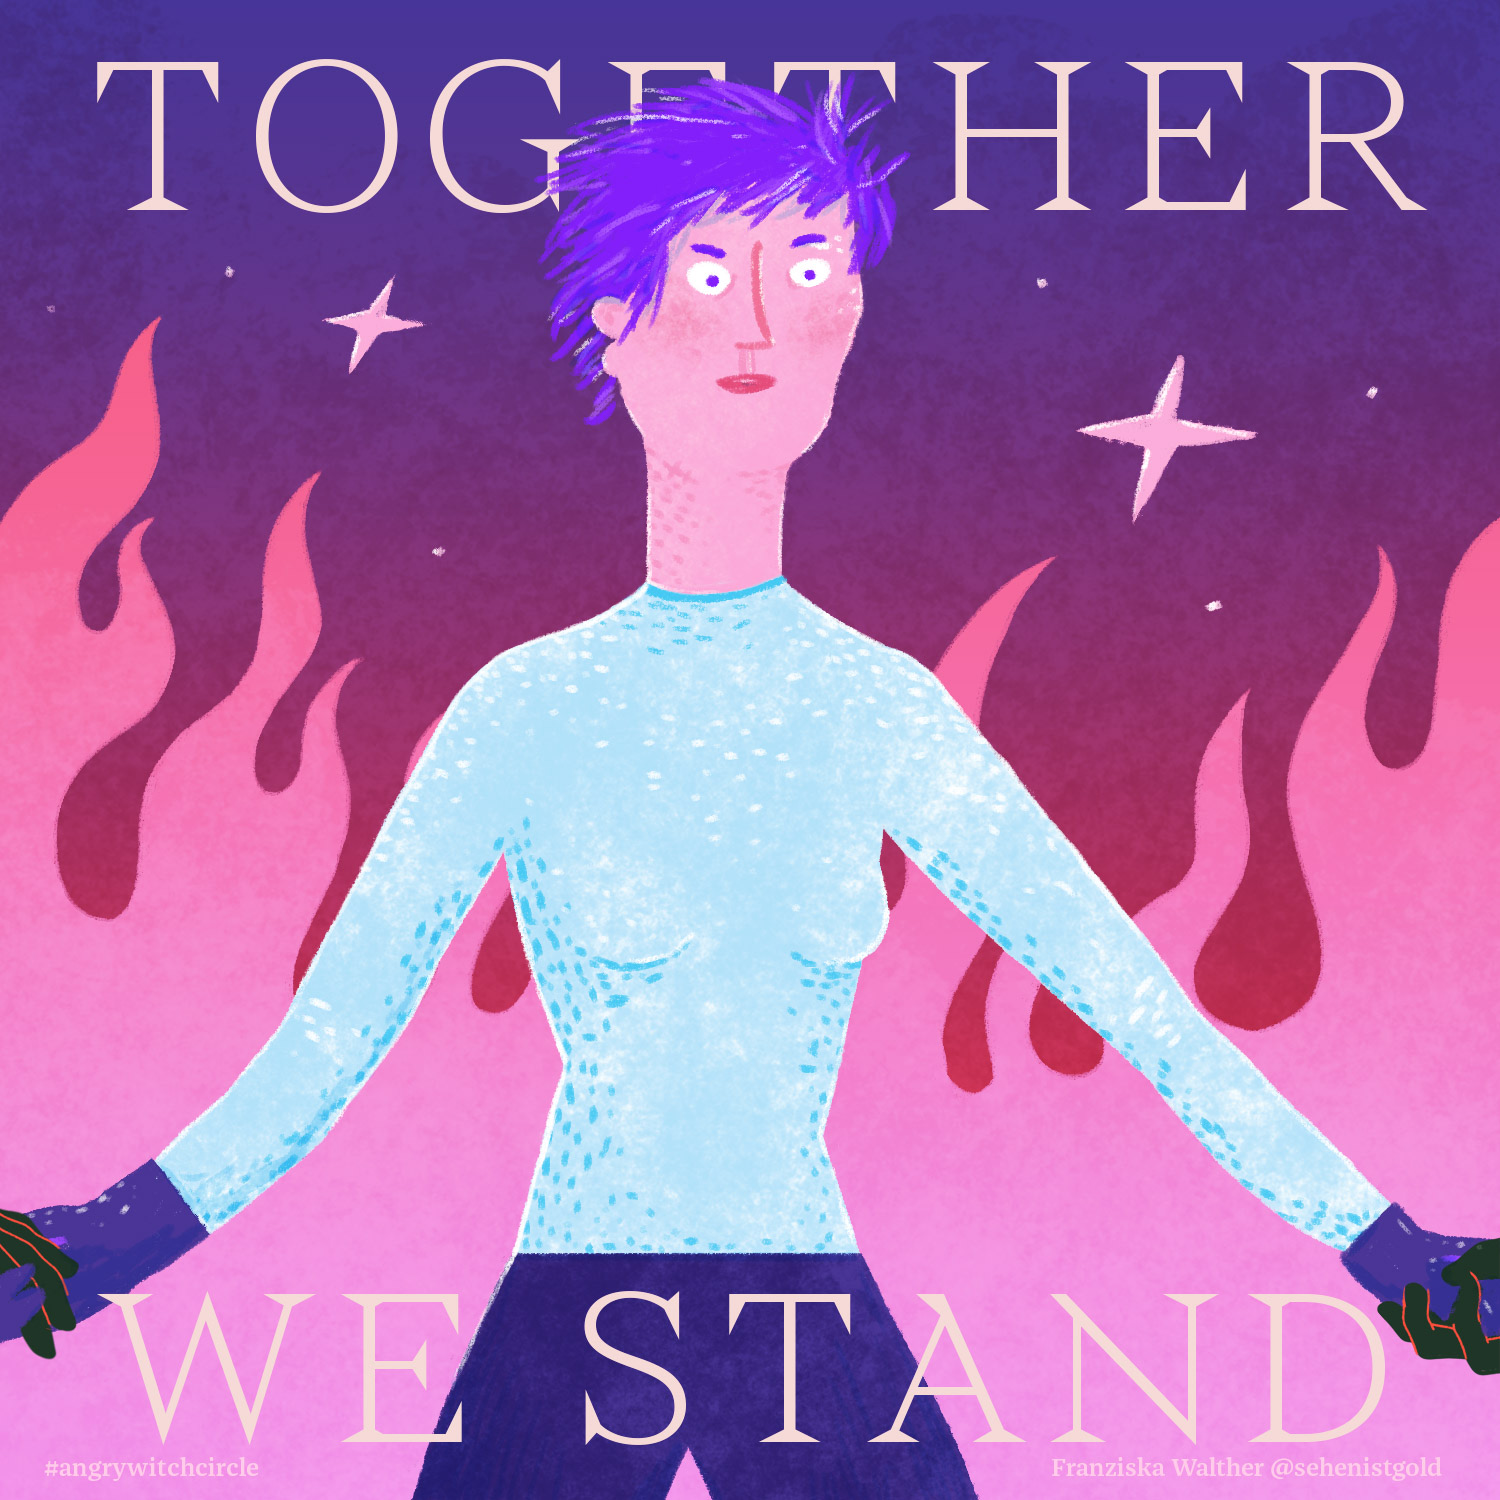 20-Together-we-stand